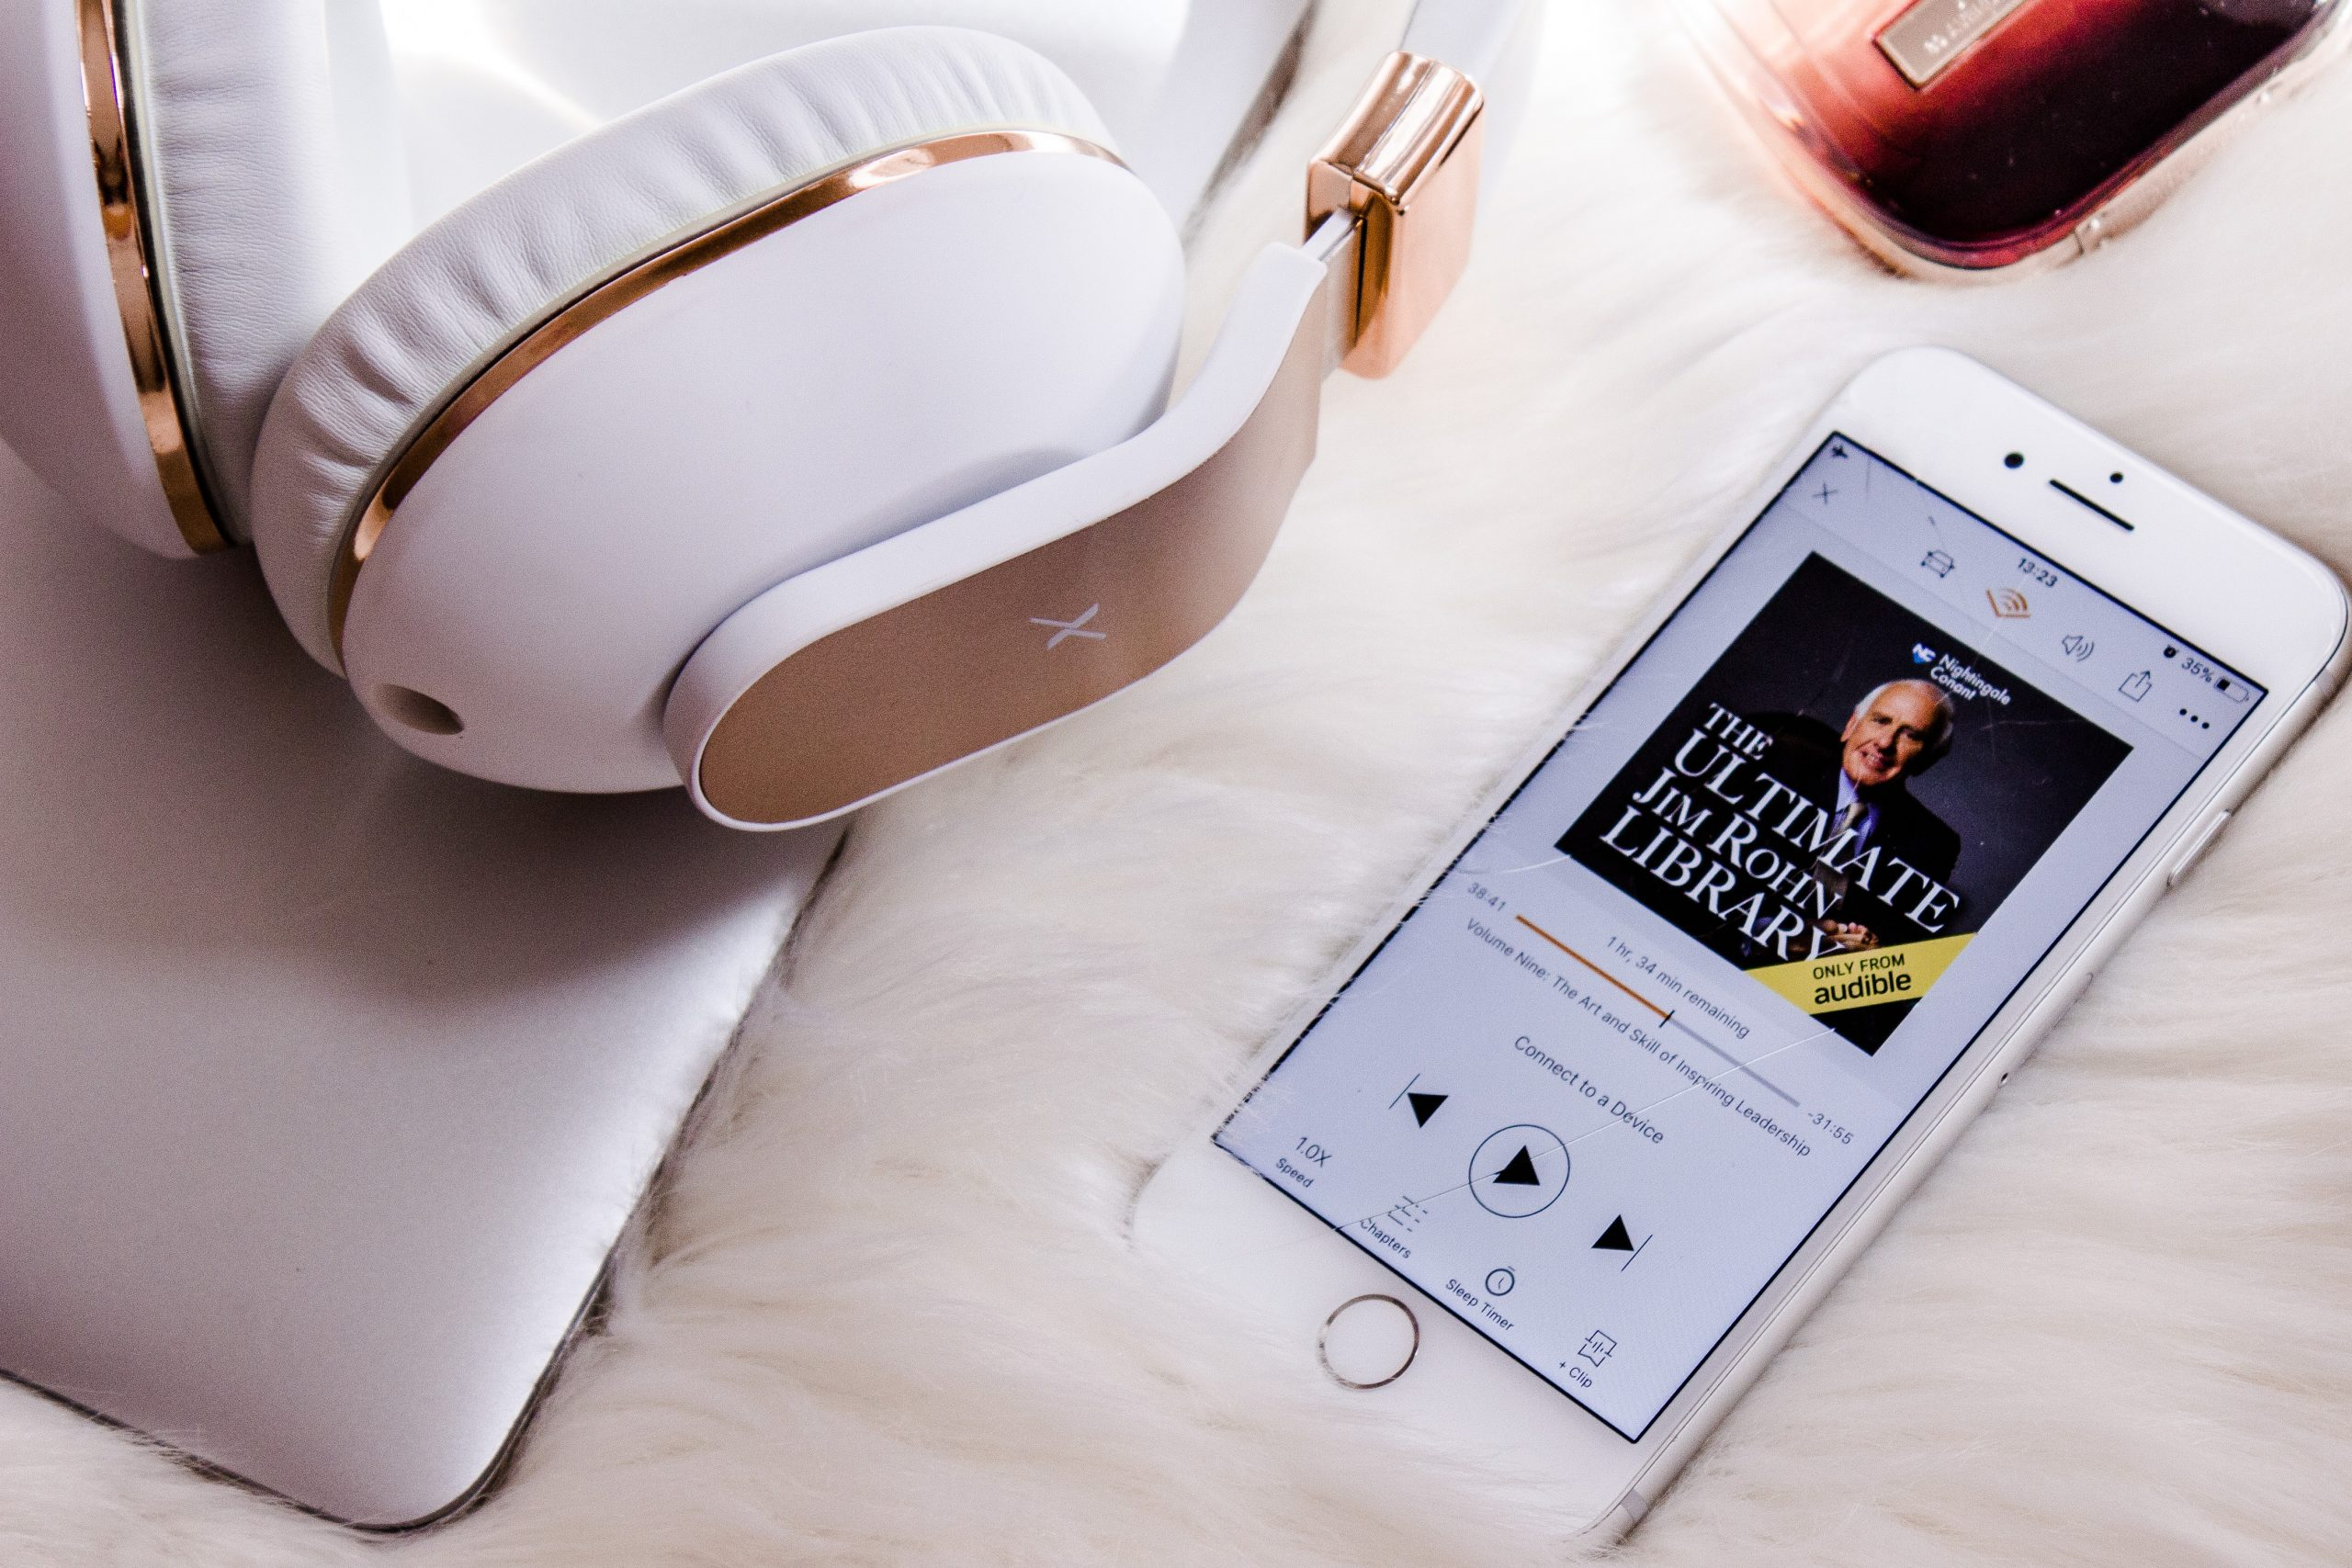 Where to Find a Huge Collection of Audiobooks and eBooks? All You Can Books